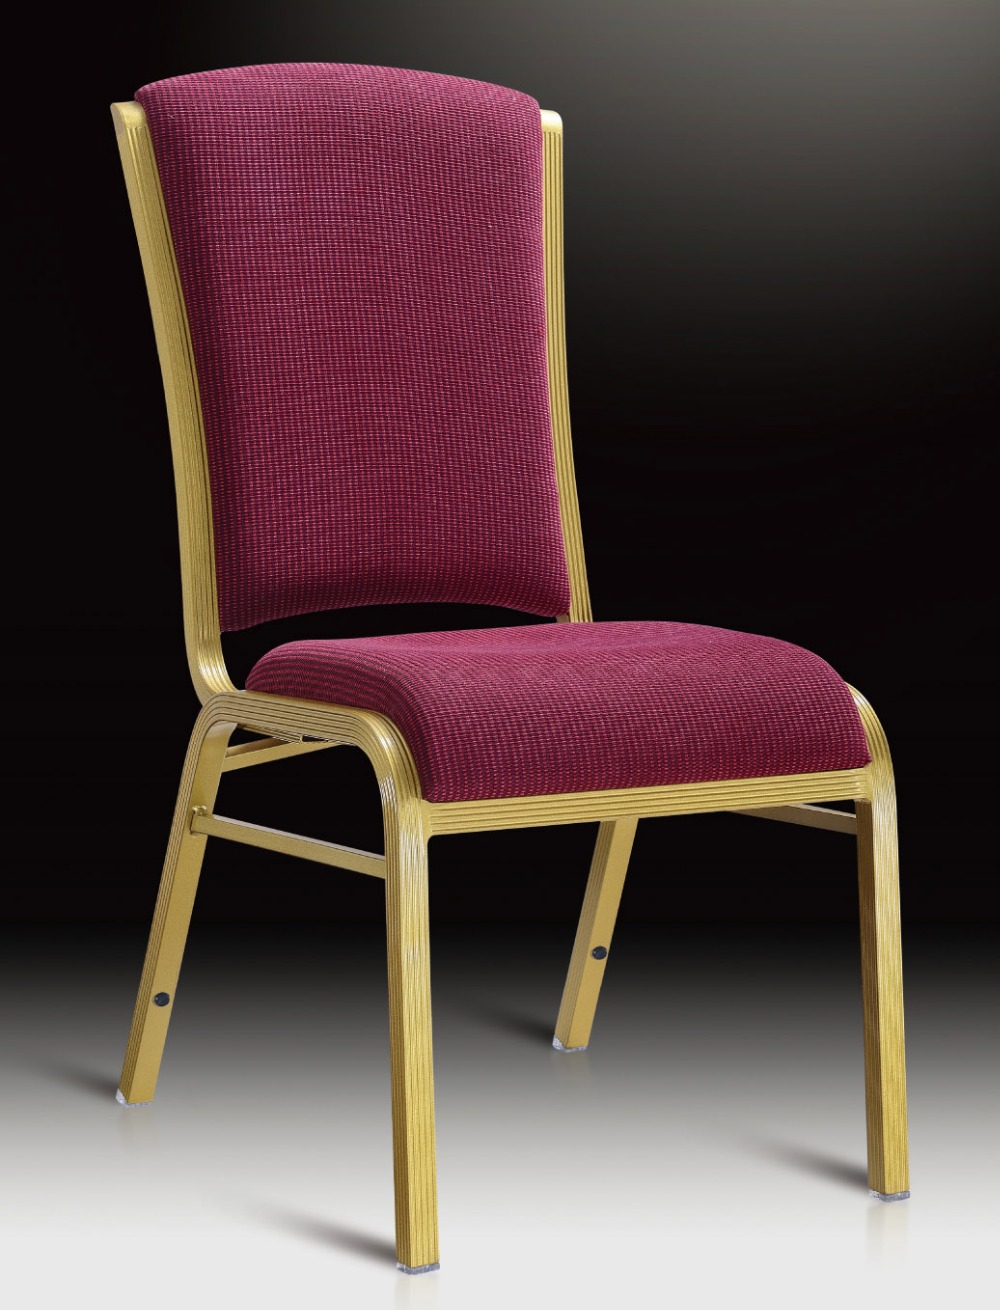 Stackable Banquet Chairs Wholesale stackable banquet chair promotion-shop for promotional stackable